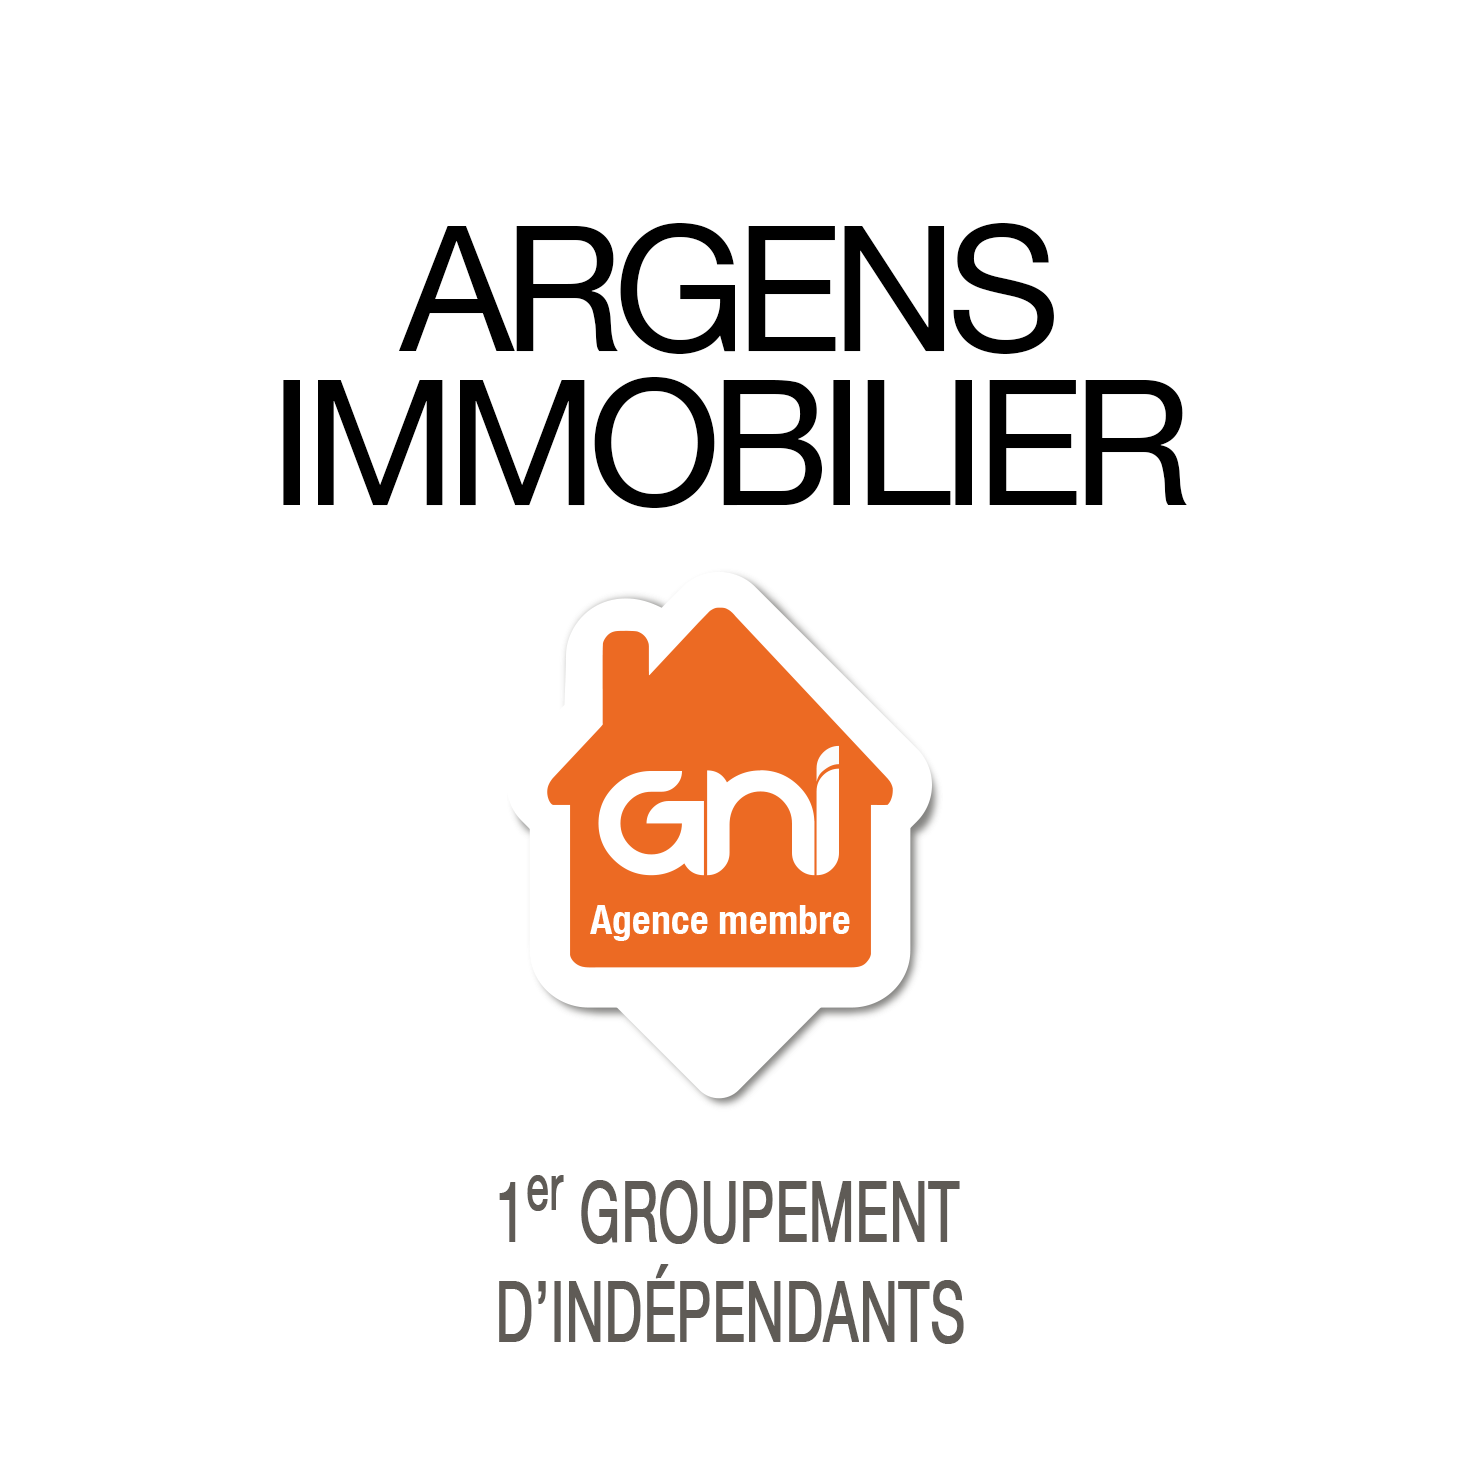 ARGENS IMMOBILIER - GNIMMO